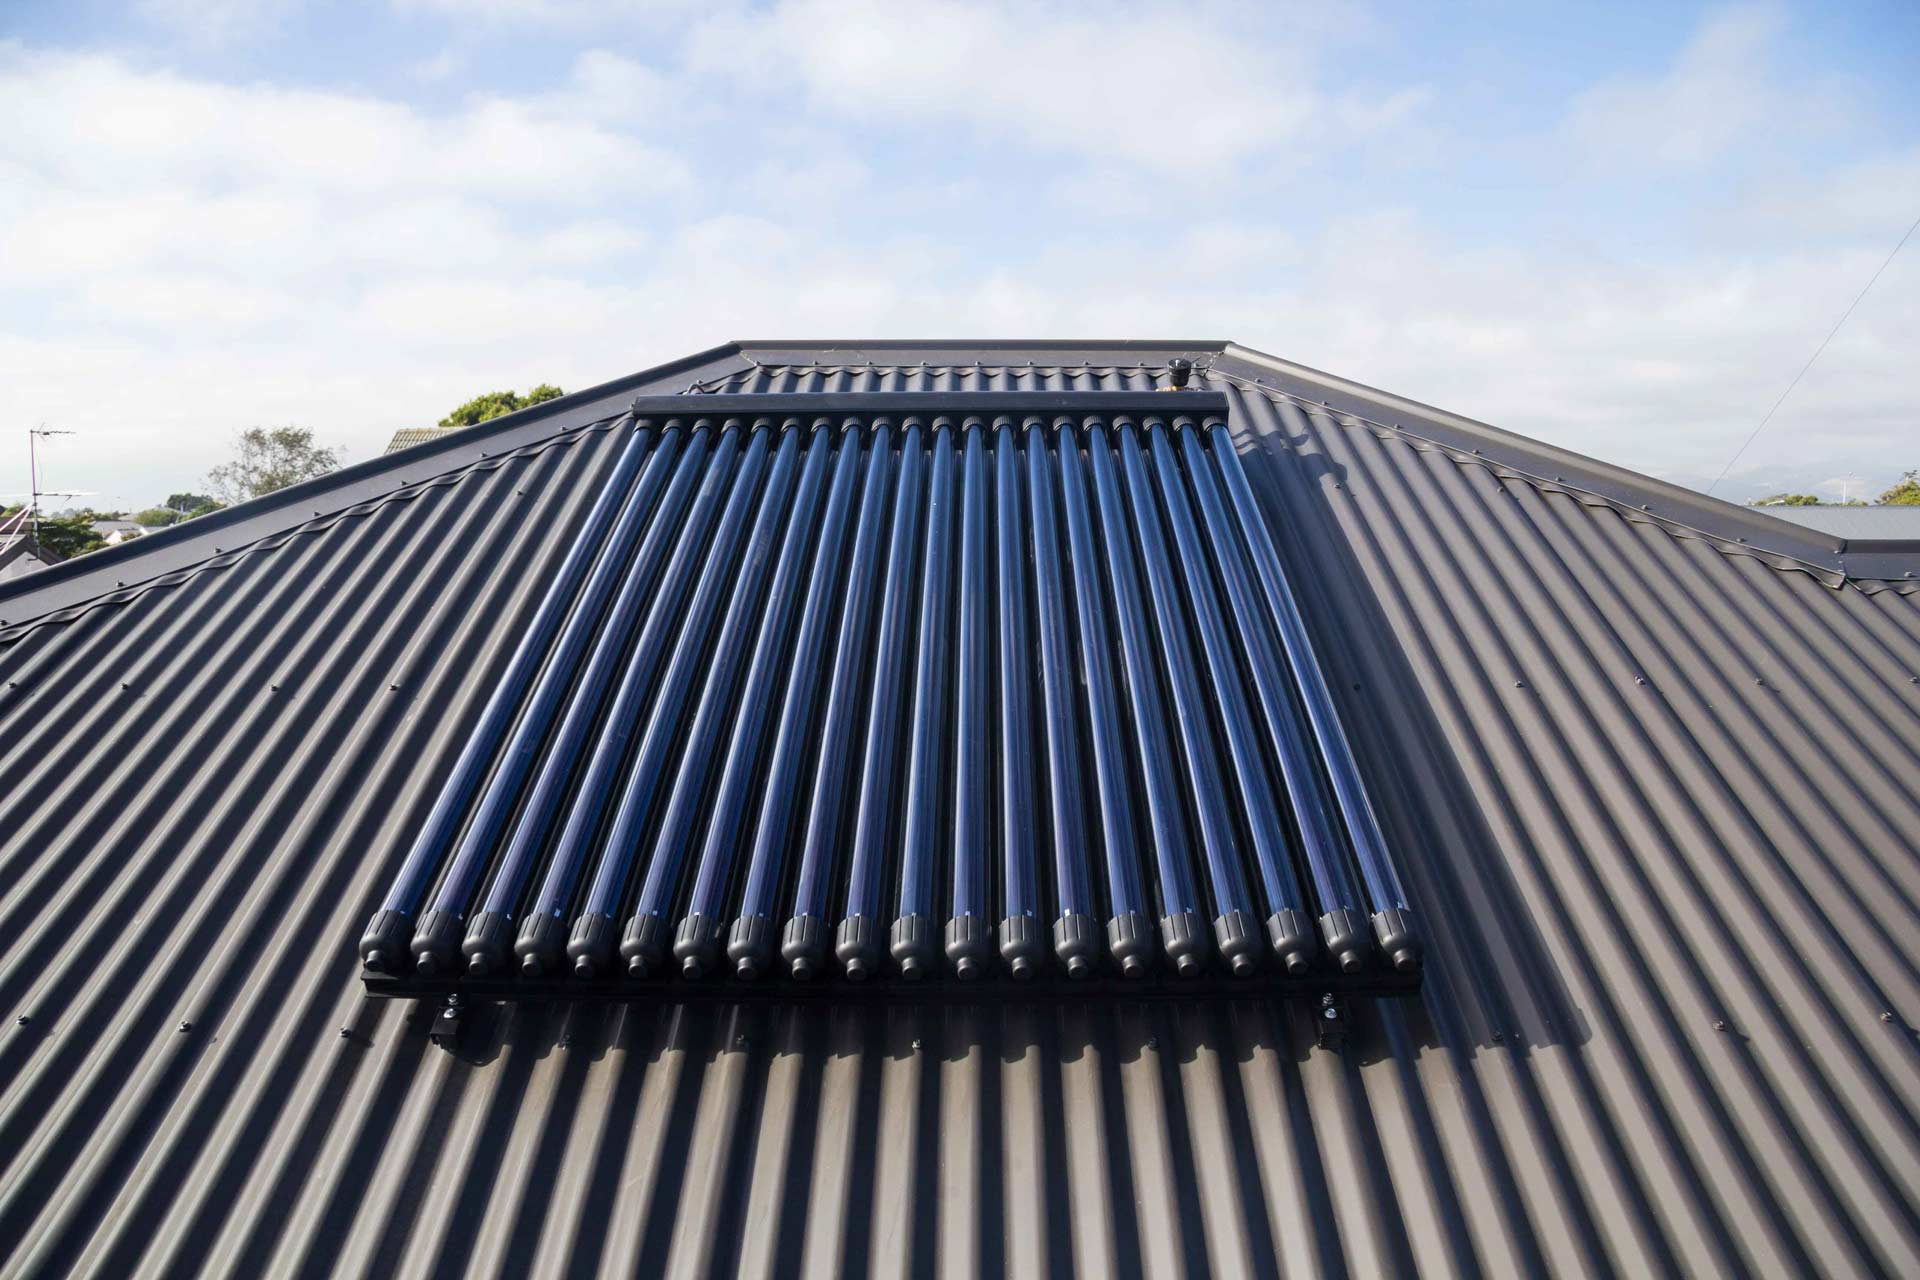 20 tube solar thermal system on roof